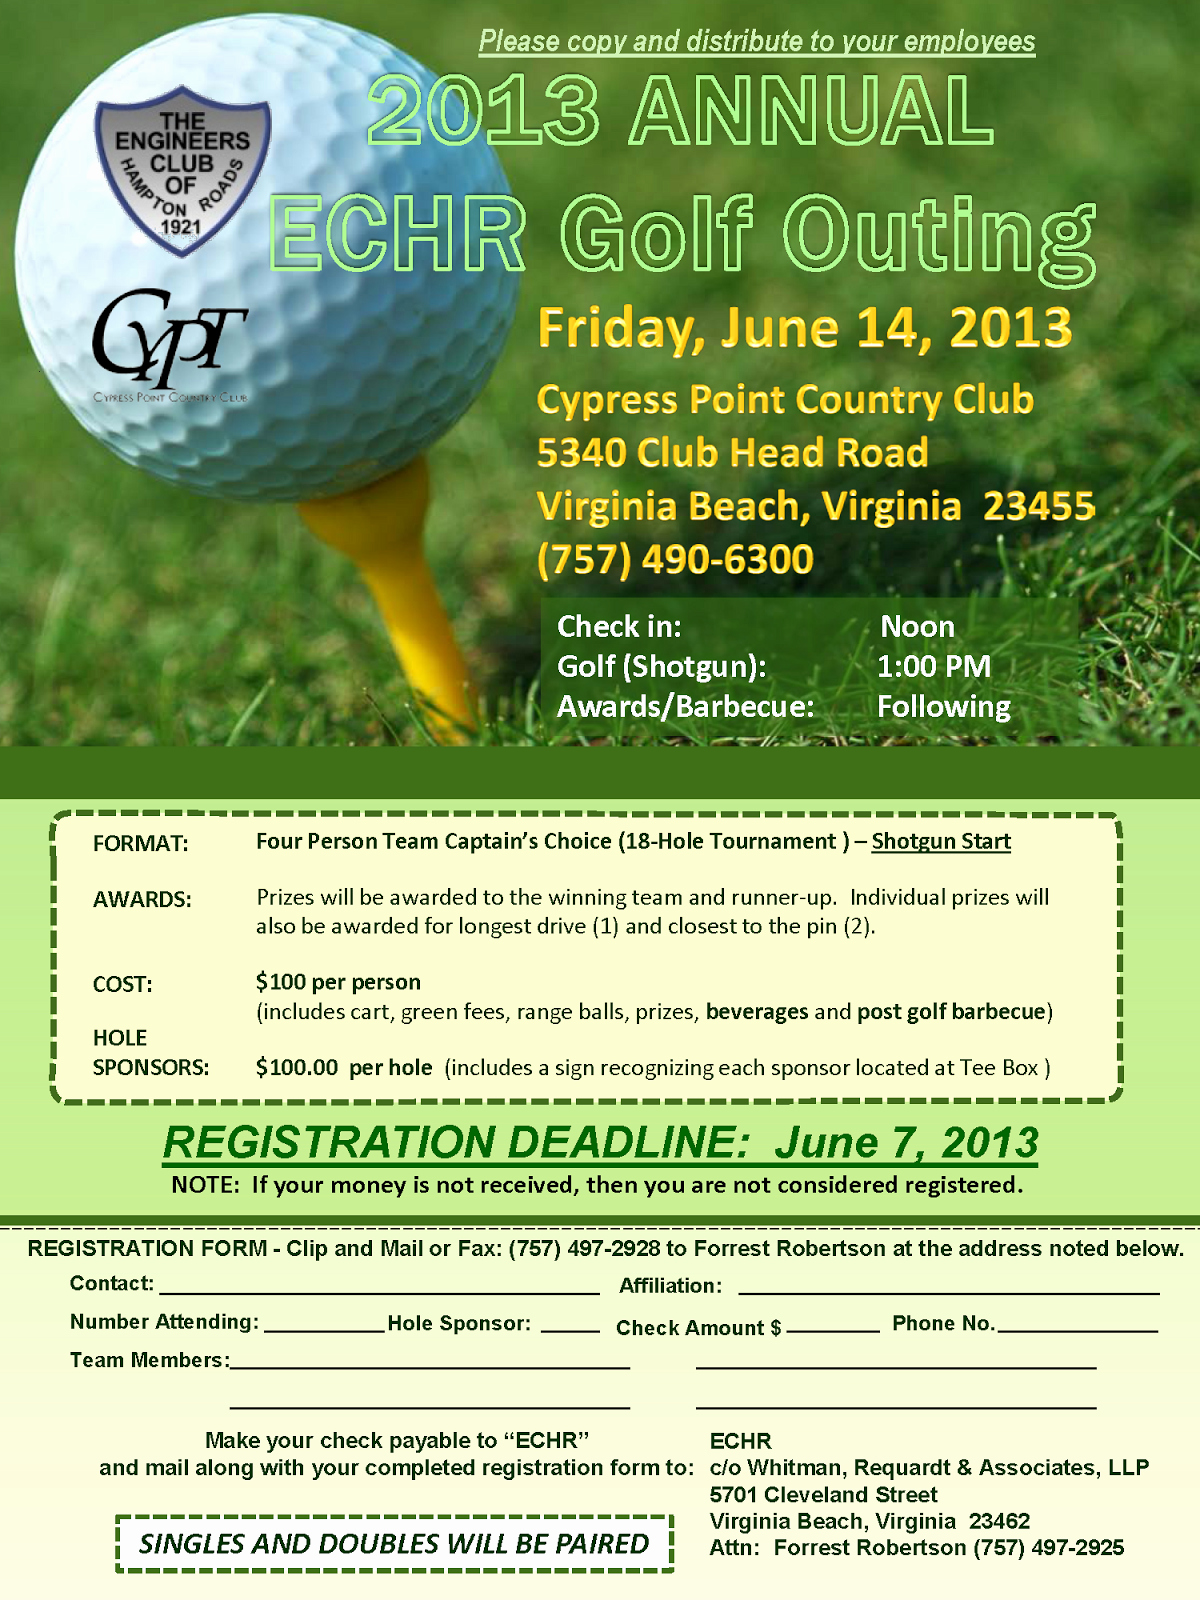 Golf Outing Flyer Template Best Of Tidewater Chapter Vspe 2013 Annual Echr Golf Outing